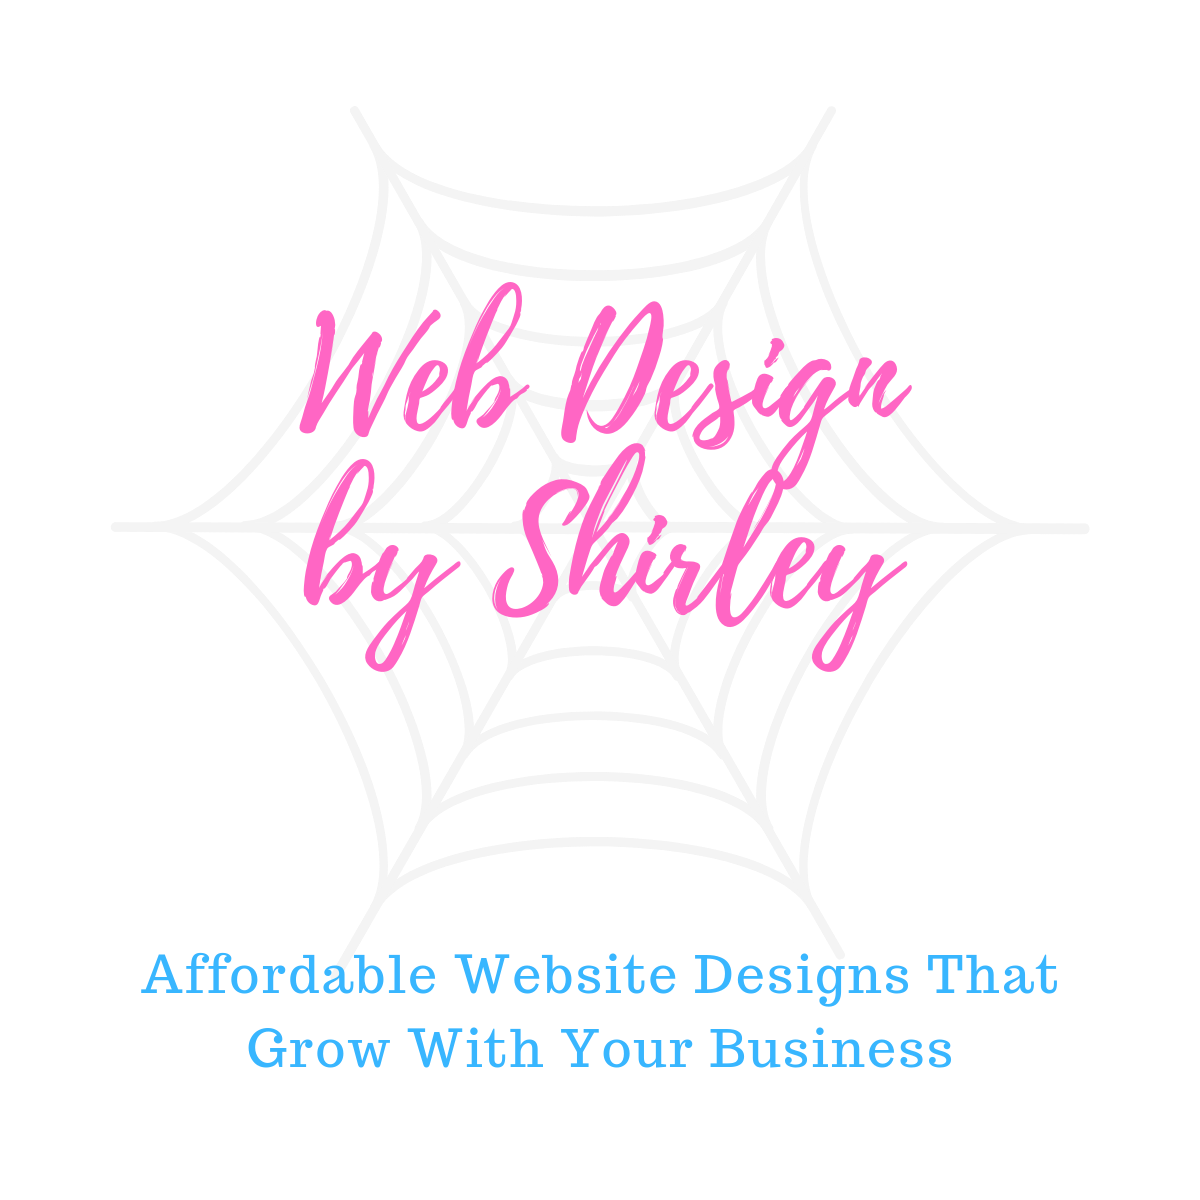 Web Design by Shirley